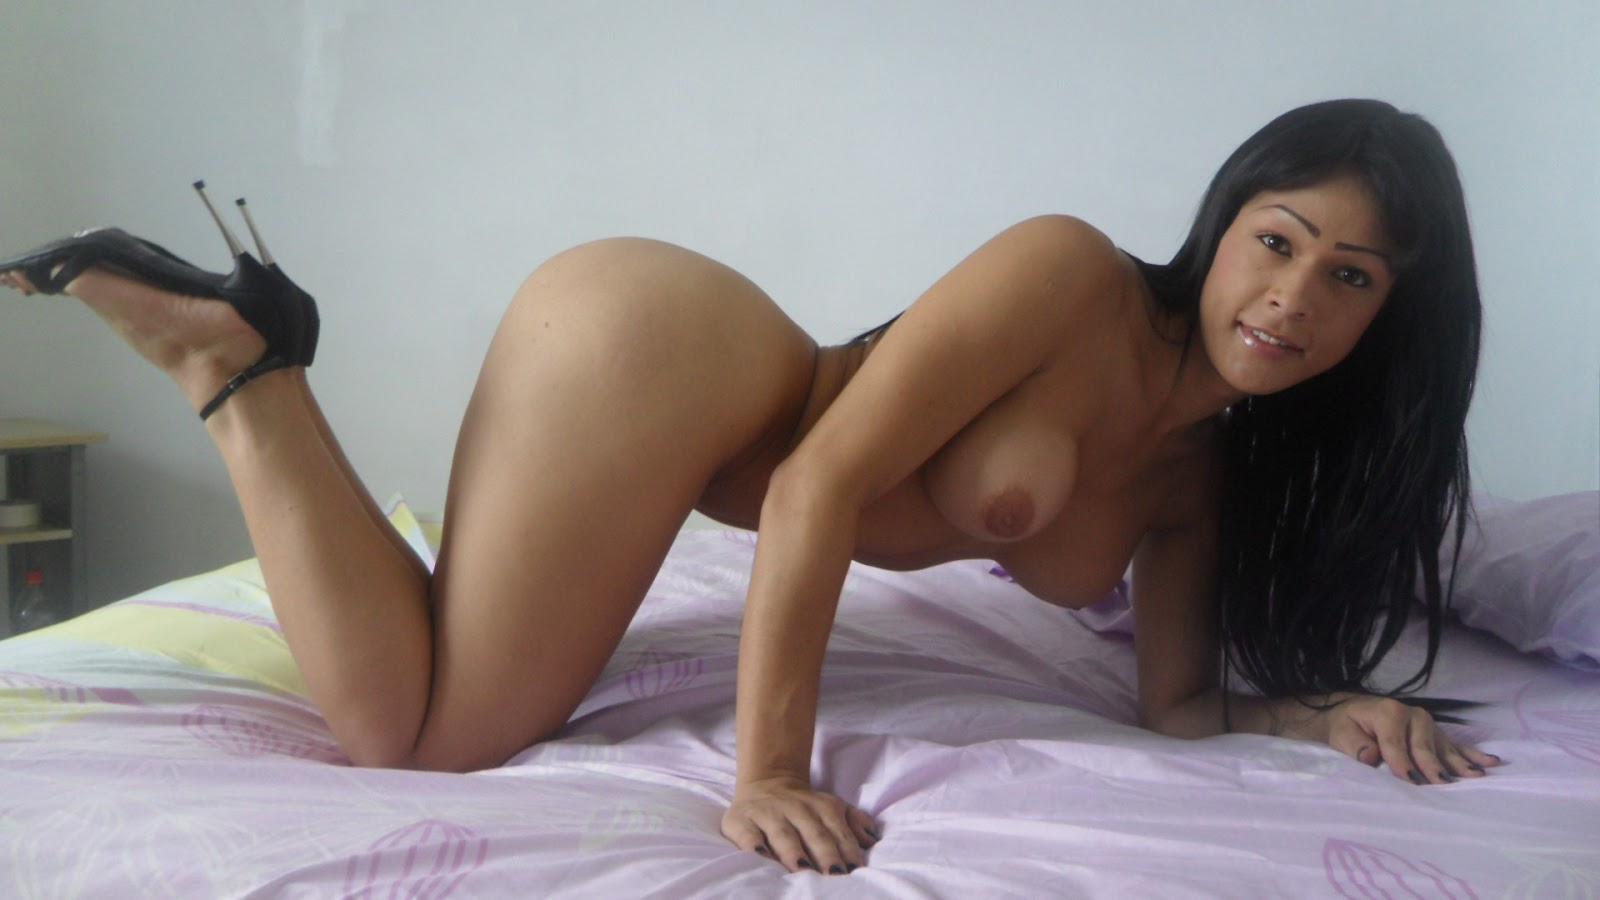 La transexual escorts Los Angeles TS Escorts - TS Escort Index